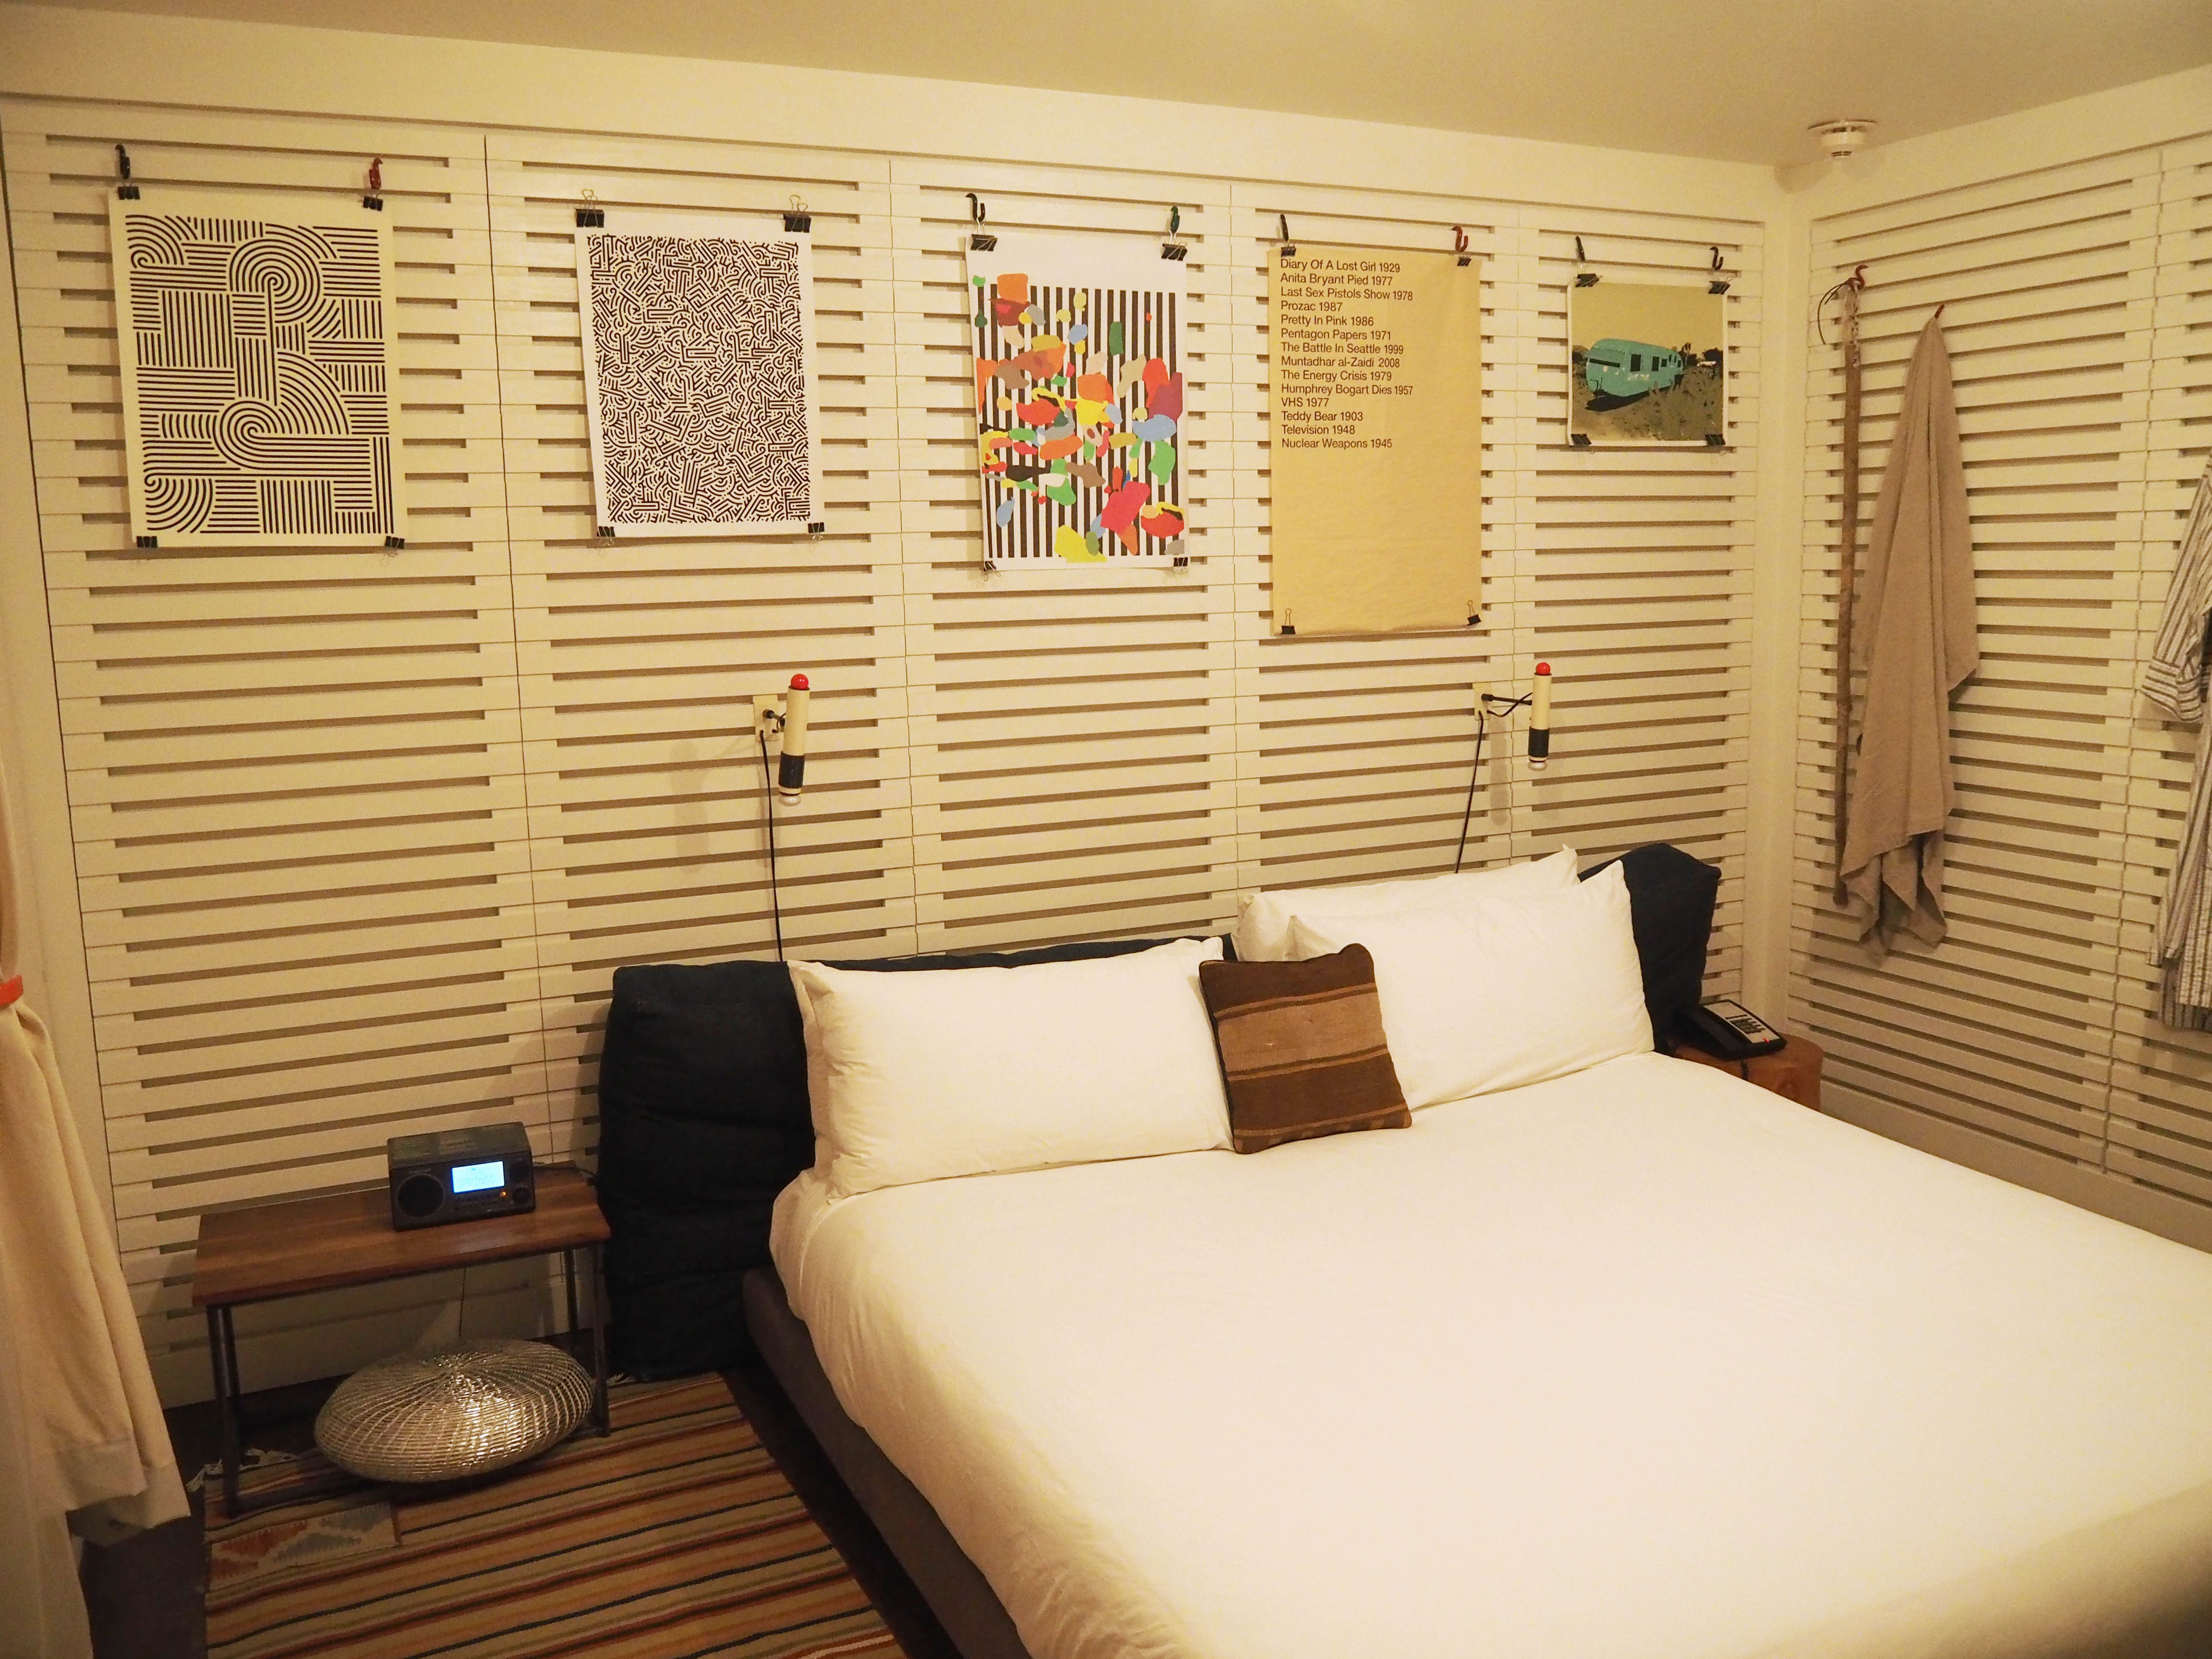 Mr and Mrs Romance - Where to stay in Palms Springs California - The Ace Hotel